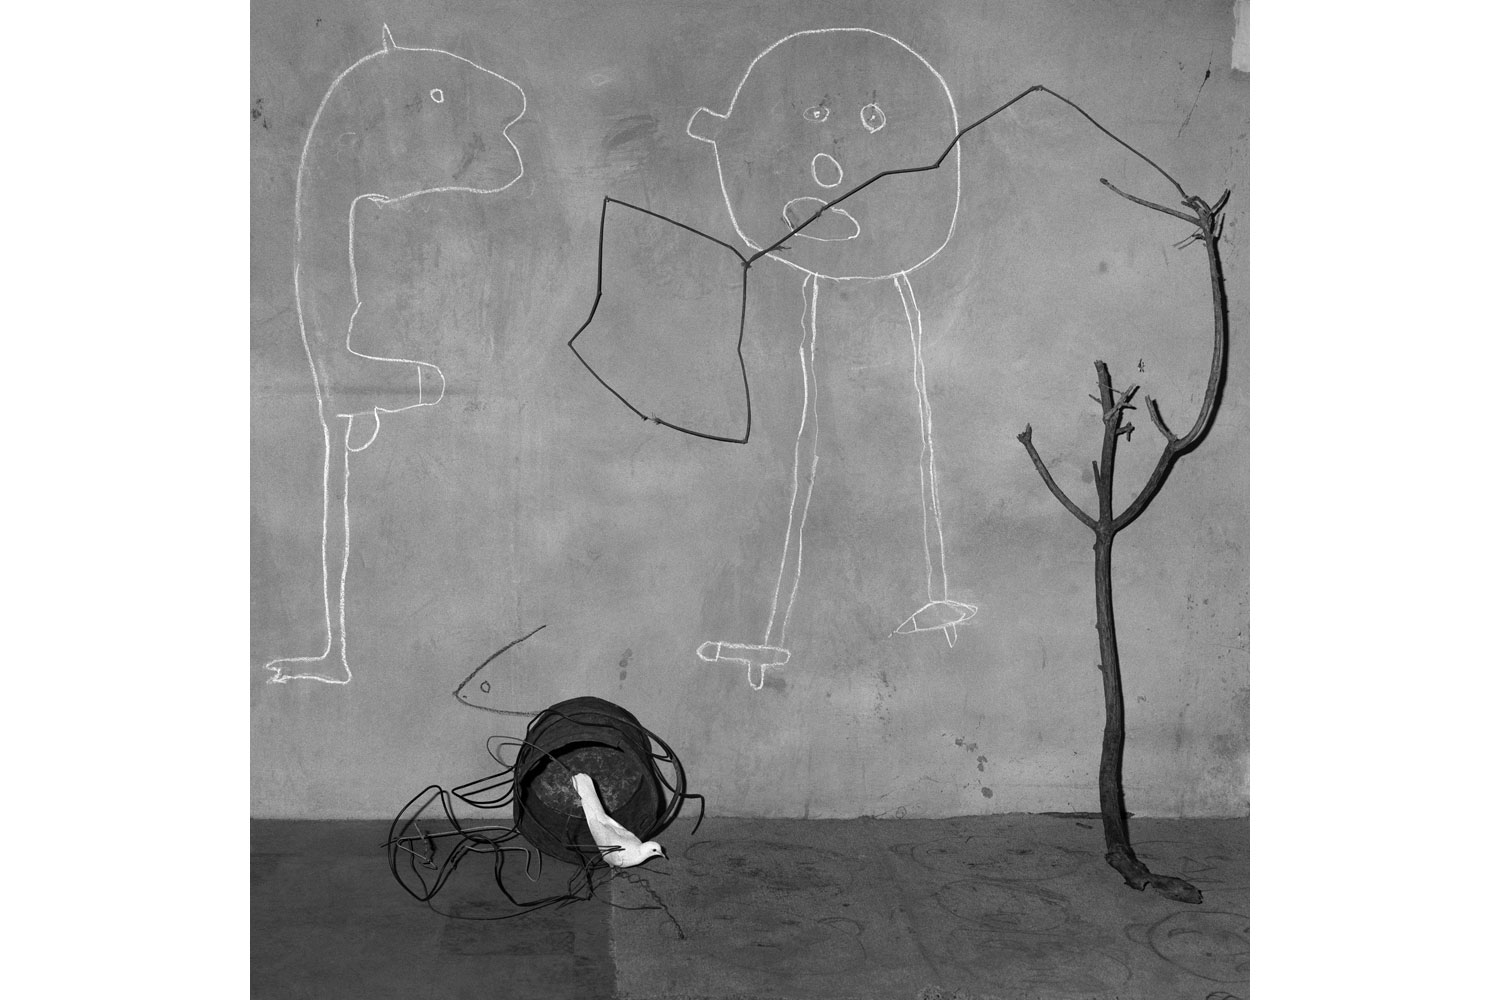 'Beware,' from Roger Ballen's Asylum of the Birds, published by Thames & Hudson